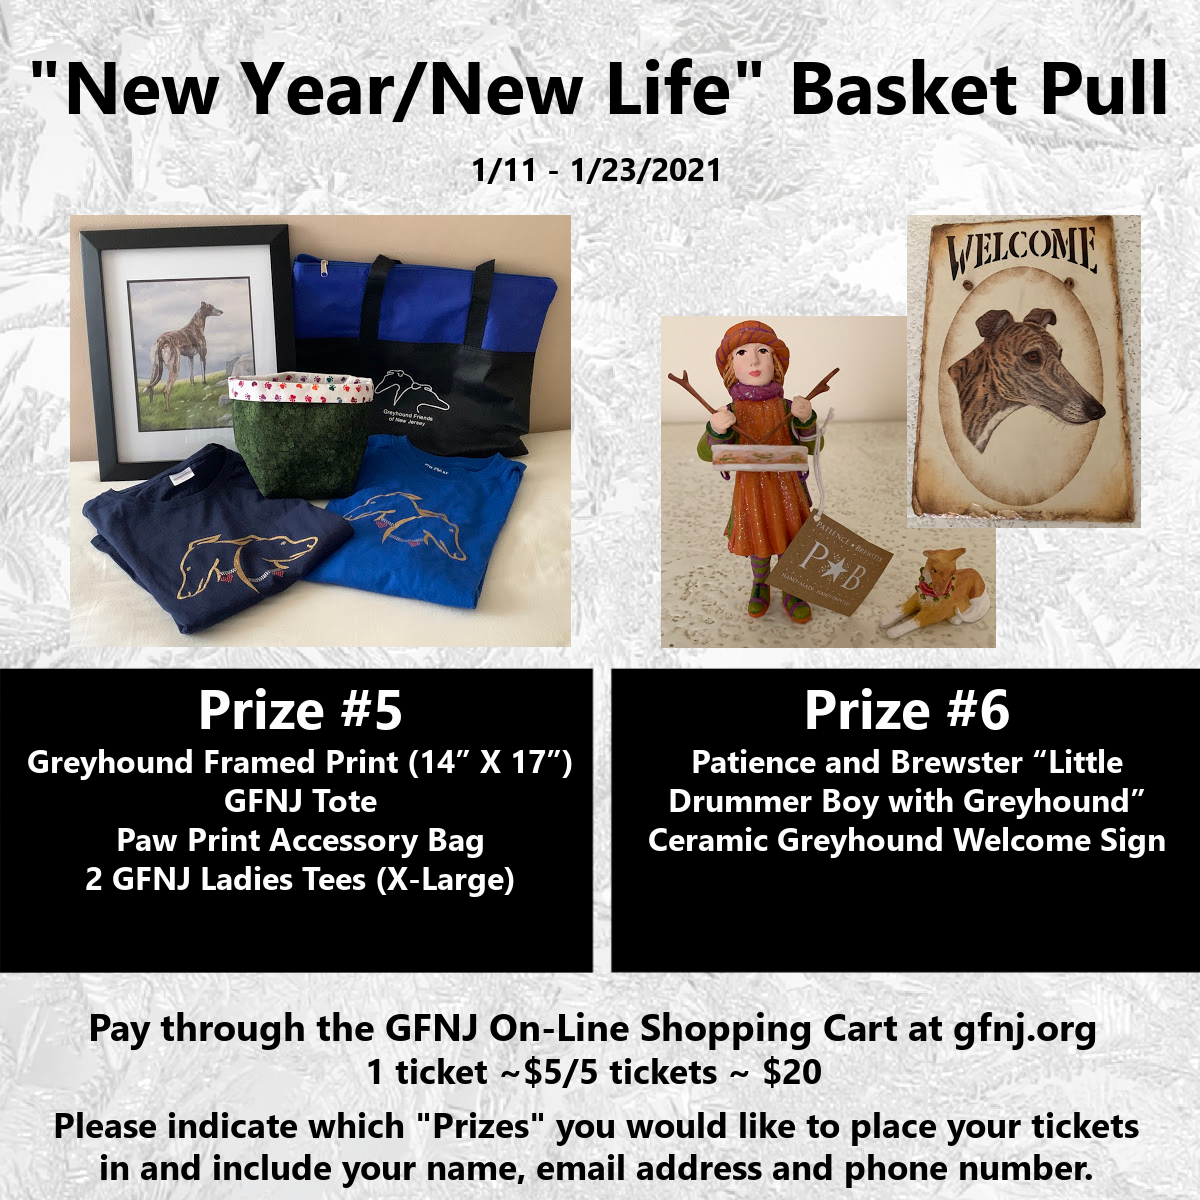 New Year/New Life Baskets 5/6